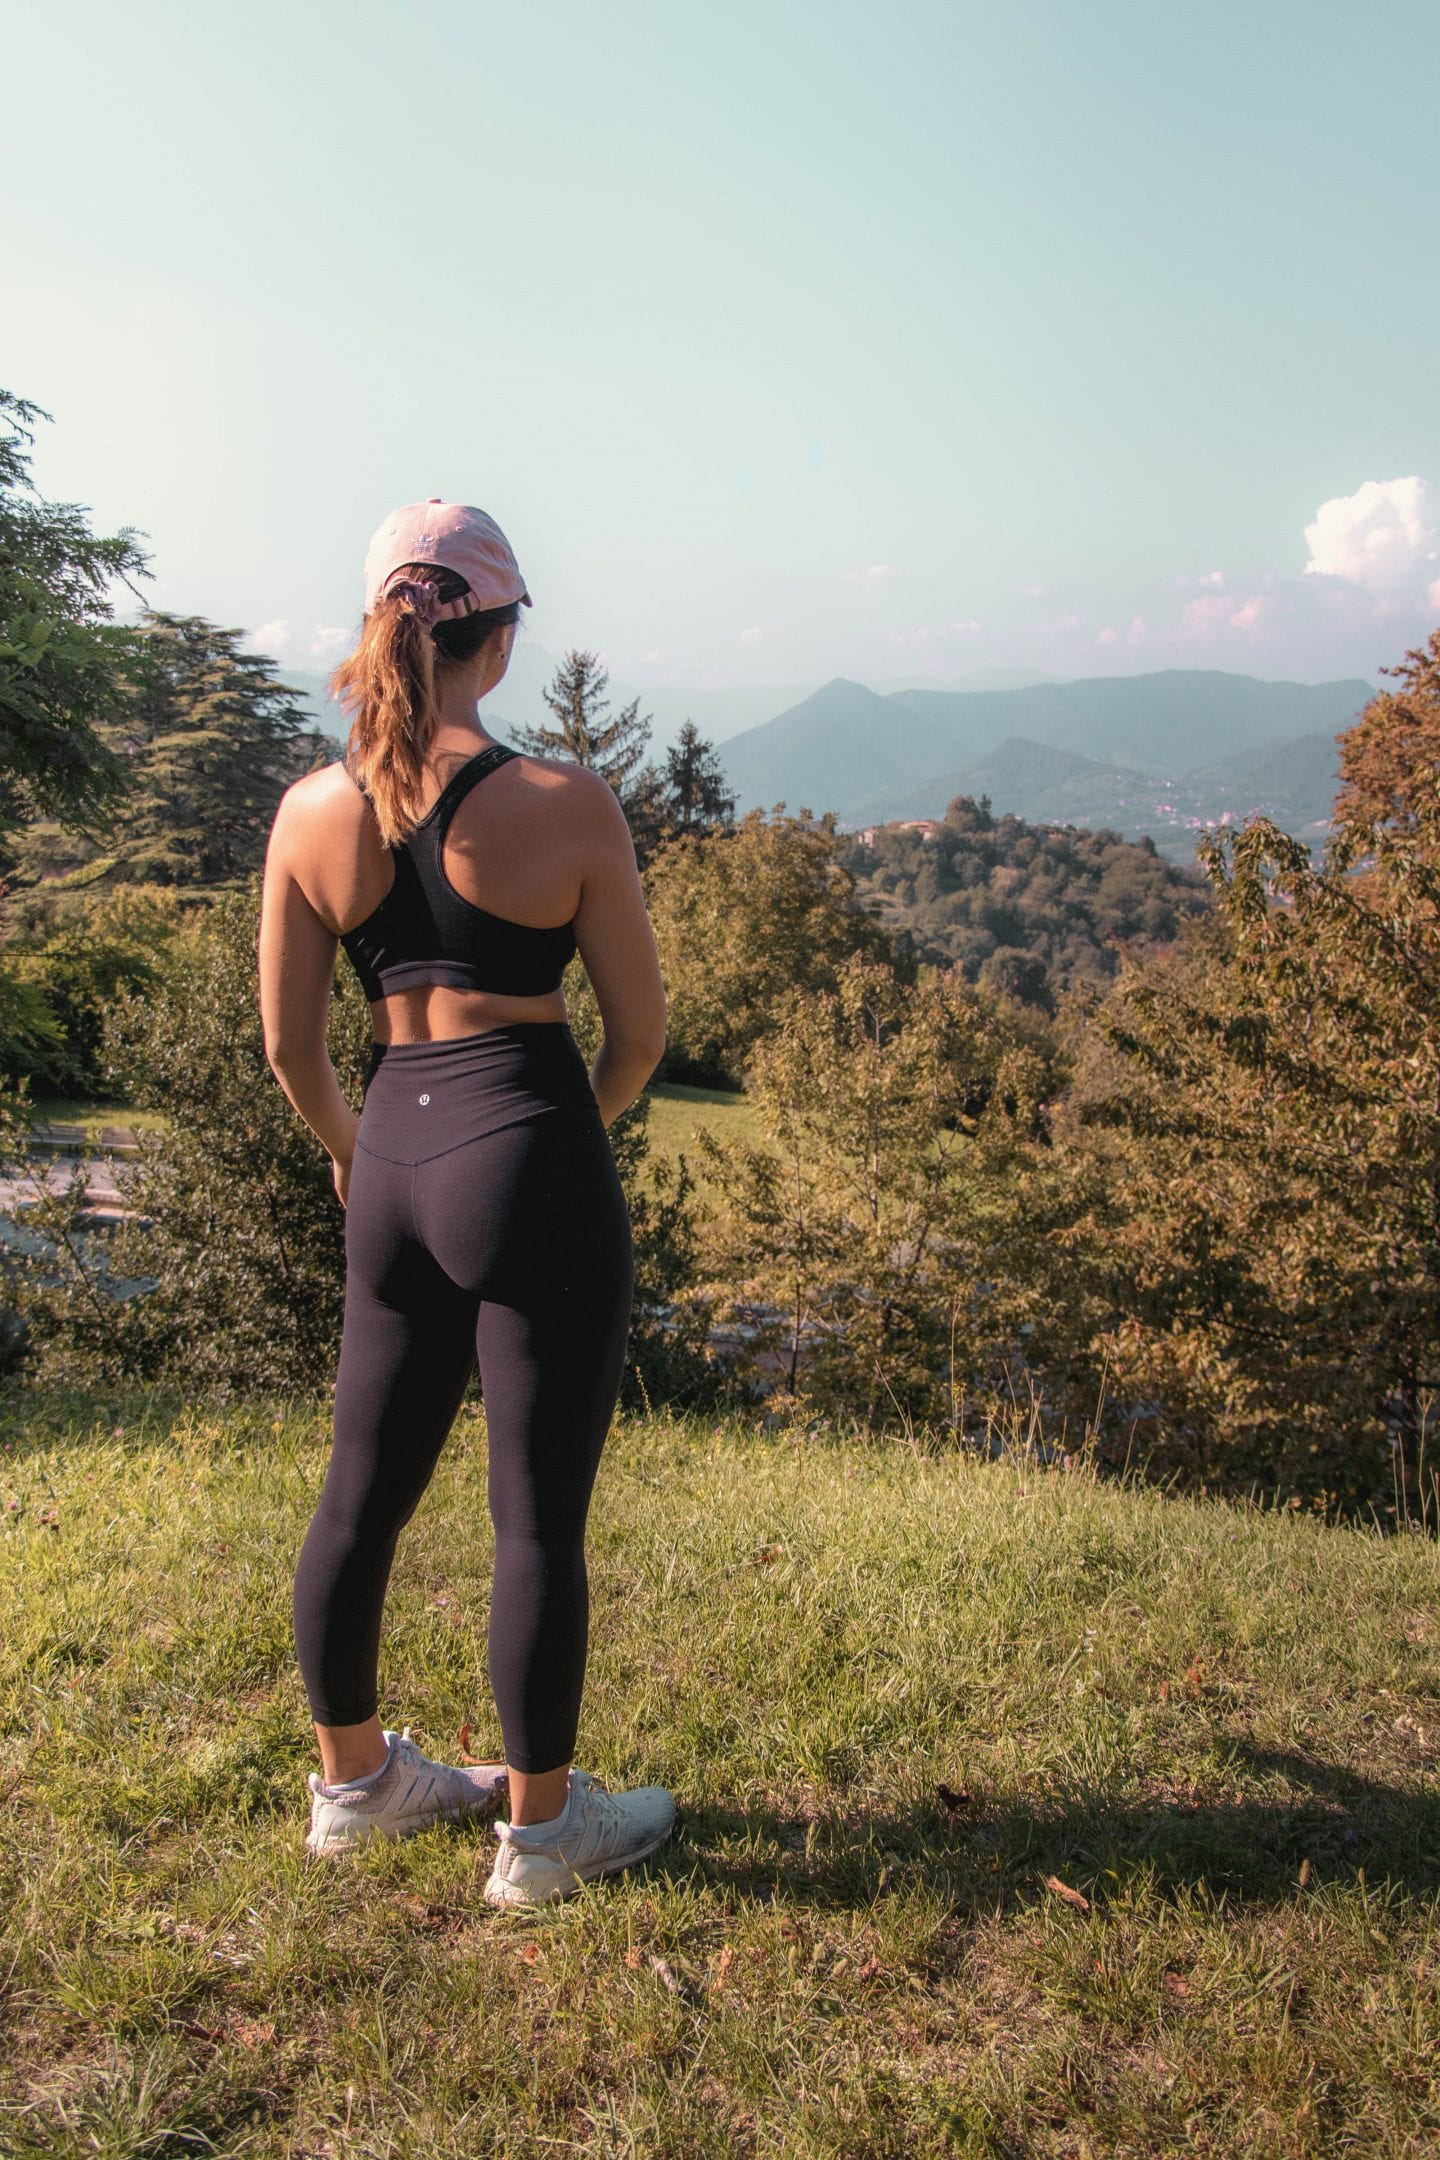 The Best Tips to Stay Fit While Traveling